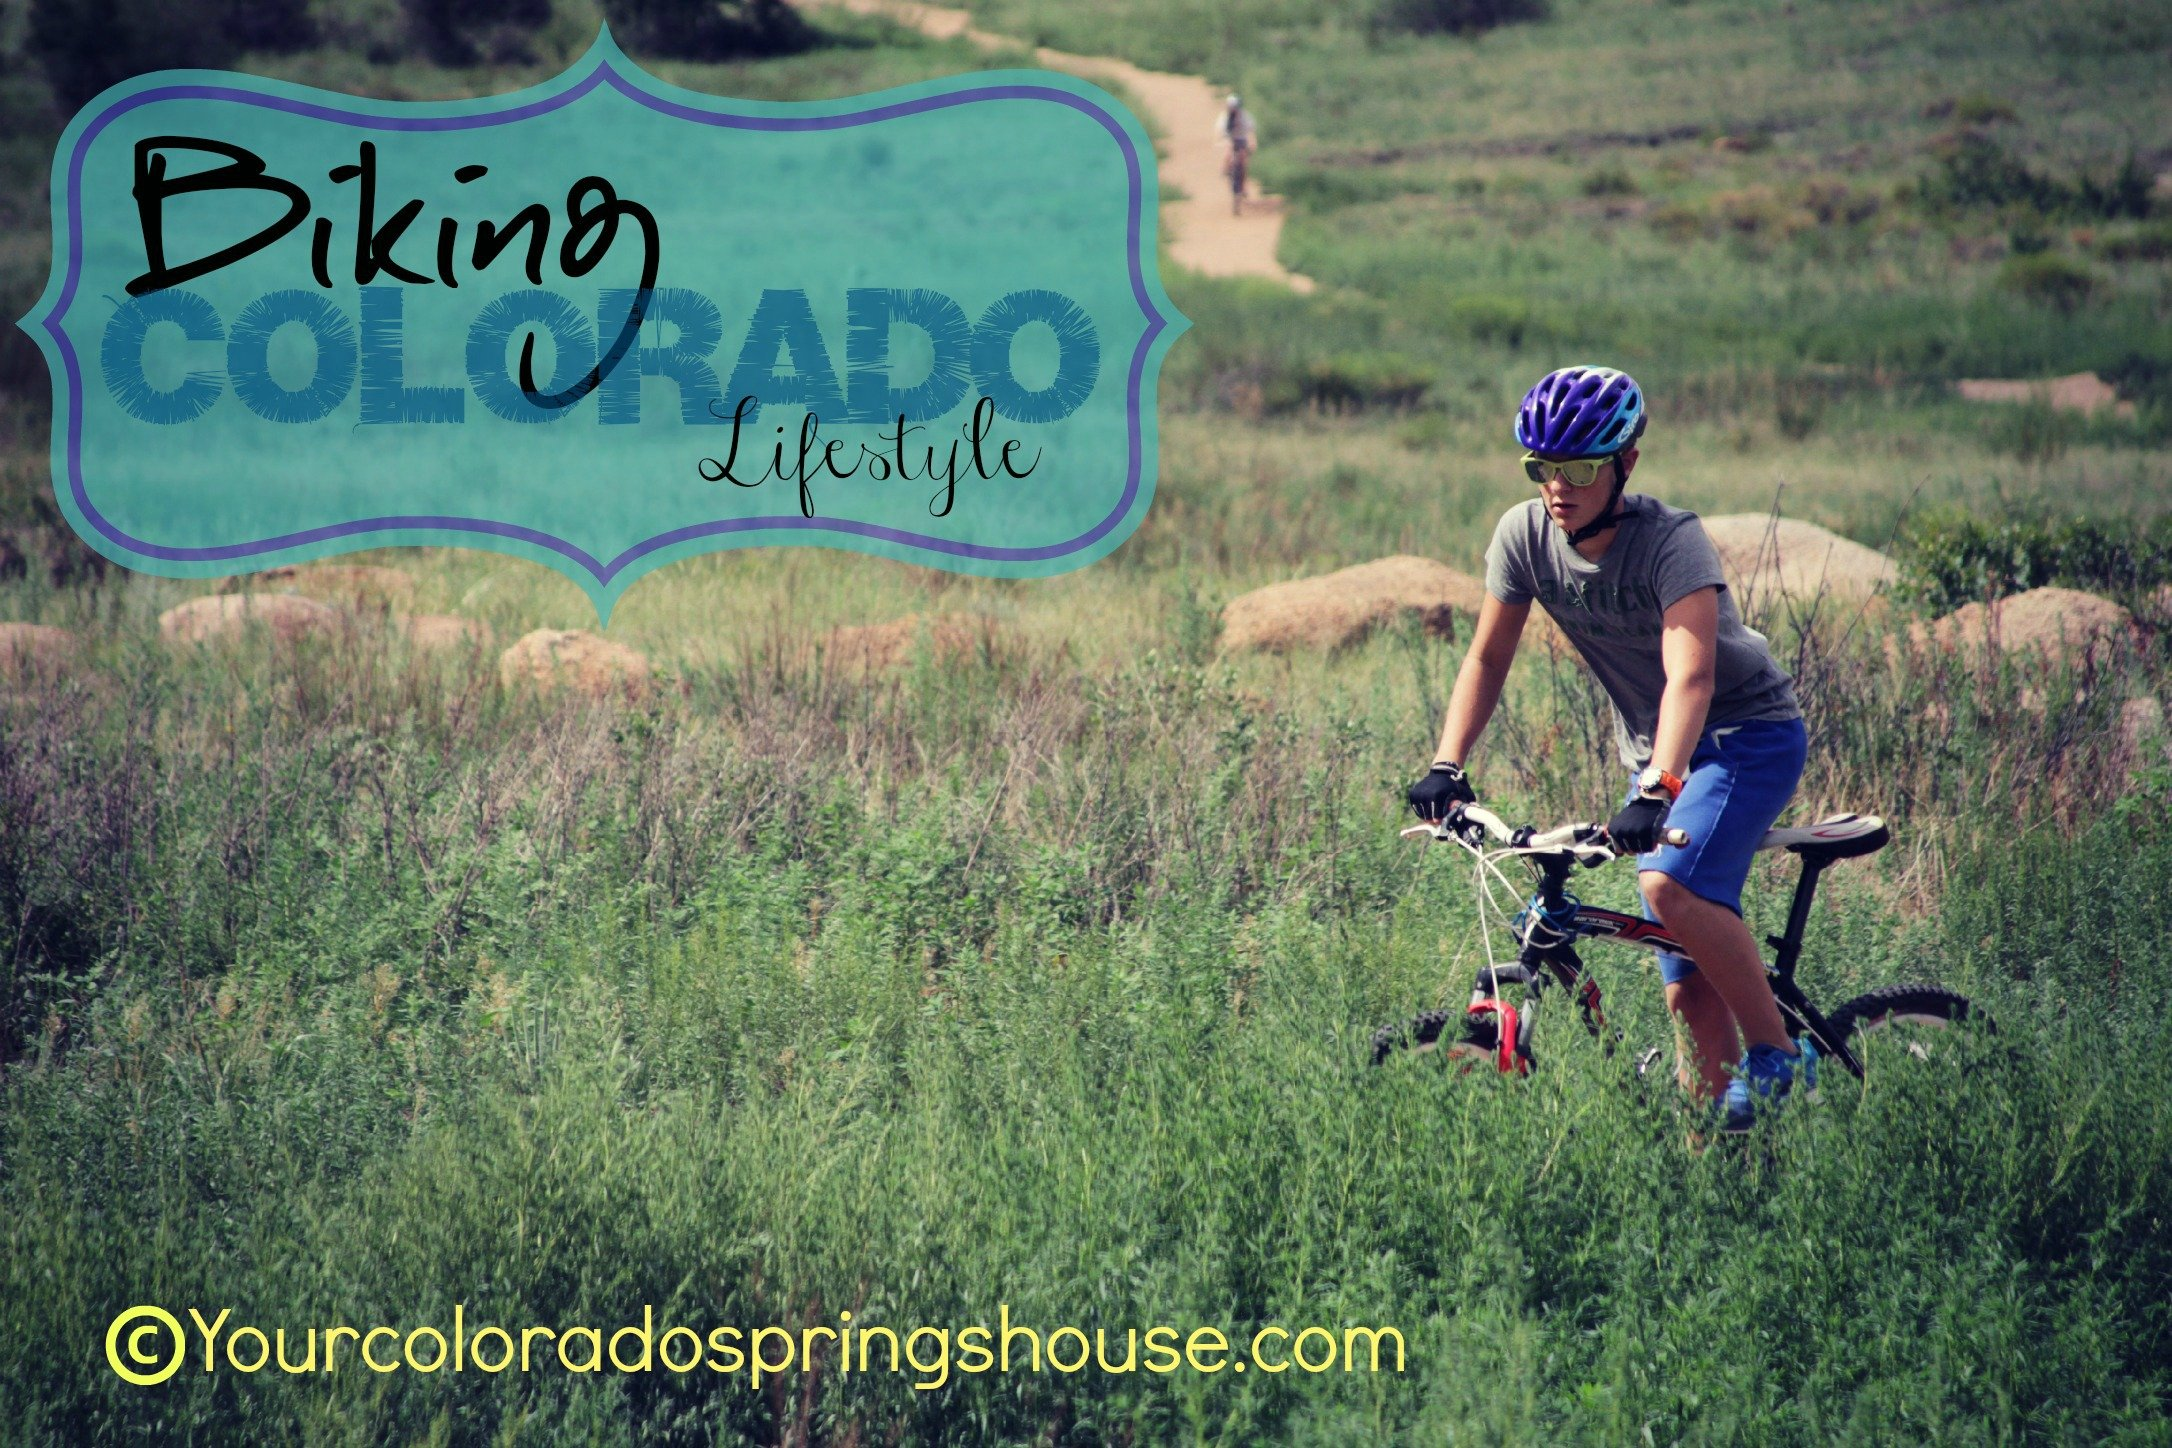 Mountain Biking Colorado Lifestyle